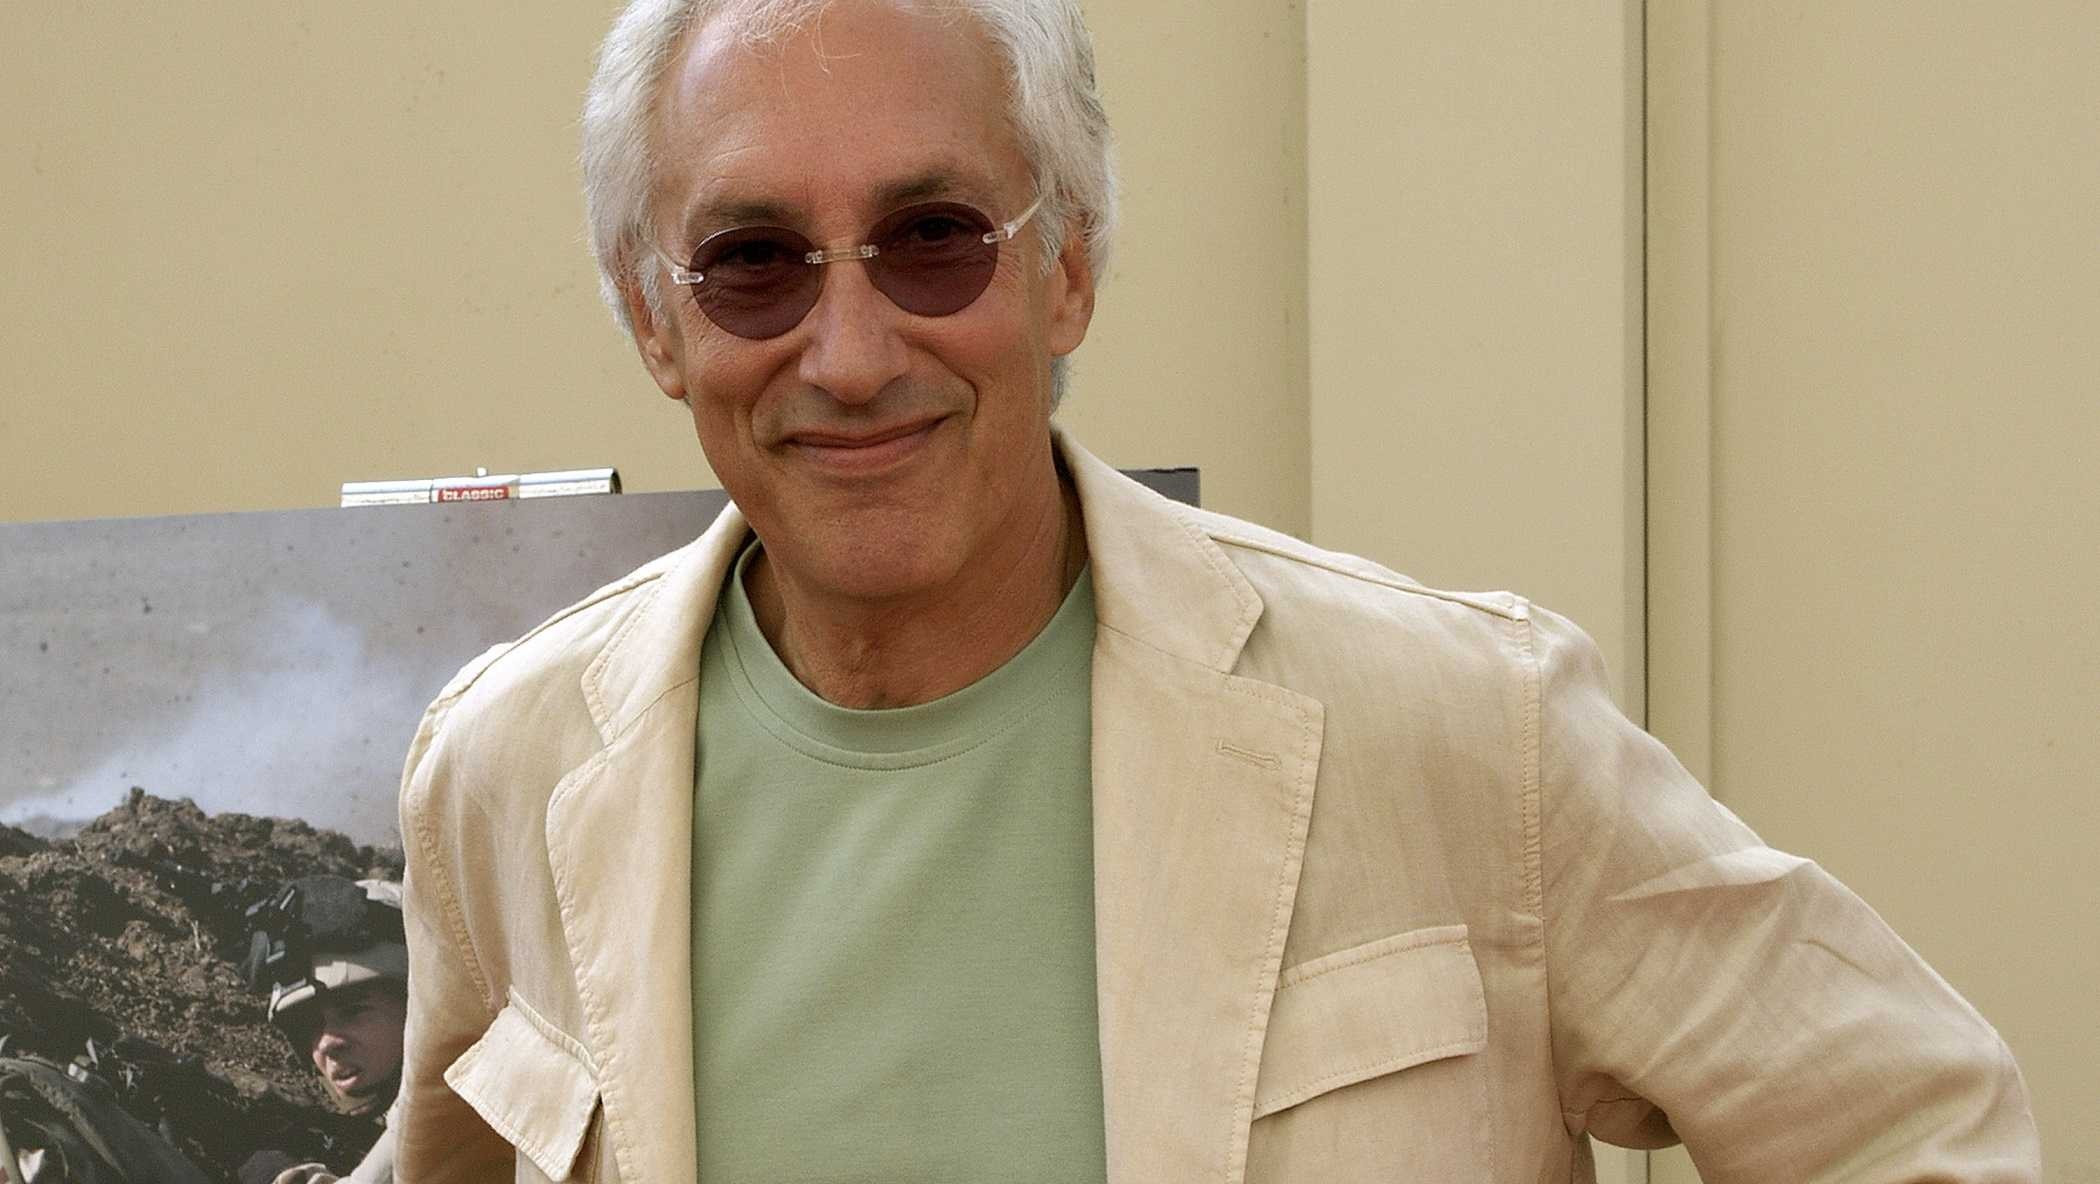 Steven Bochco during FX's 'Over There' Los Angeles Premiere at the Darryl F. Zanuck Theatre.